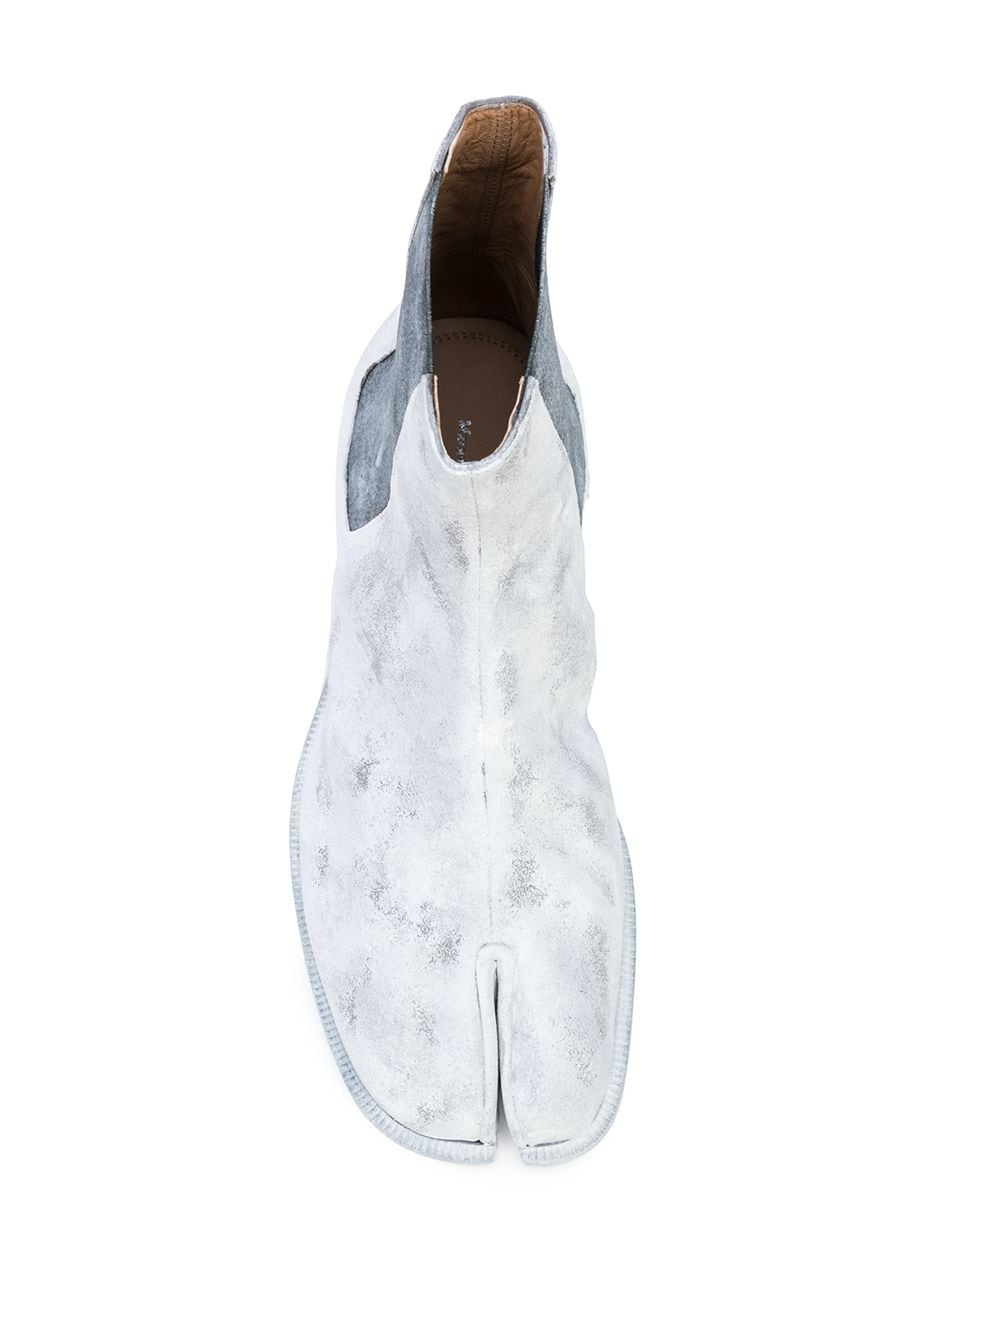 MAISON MARGIELA MEN WHITE PAINTED TABI CHELSEA BOOTS